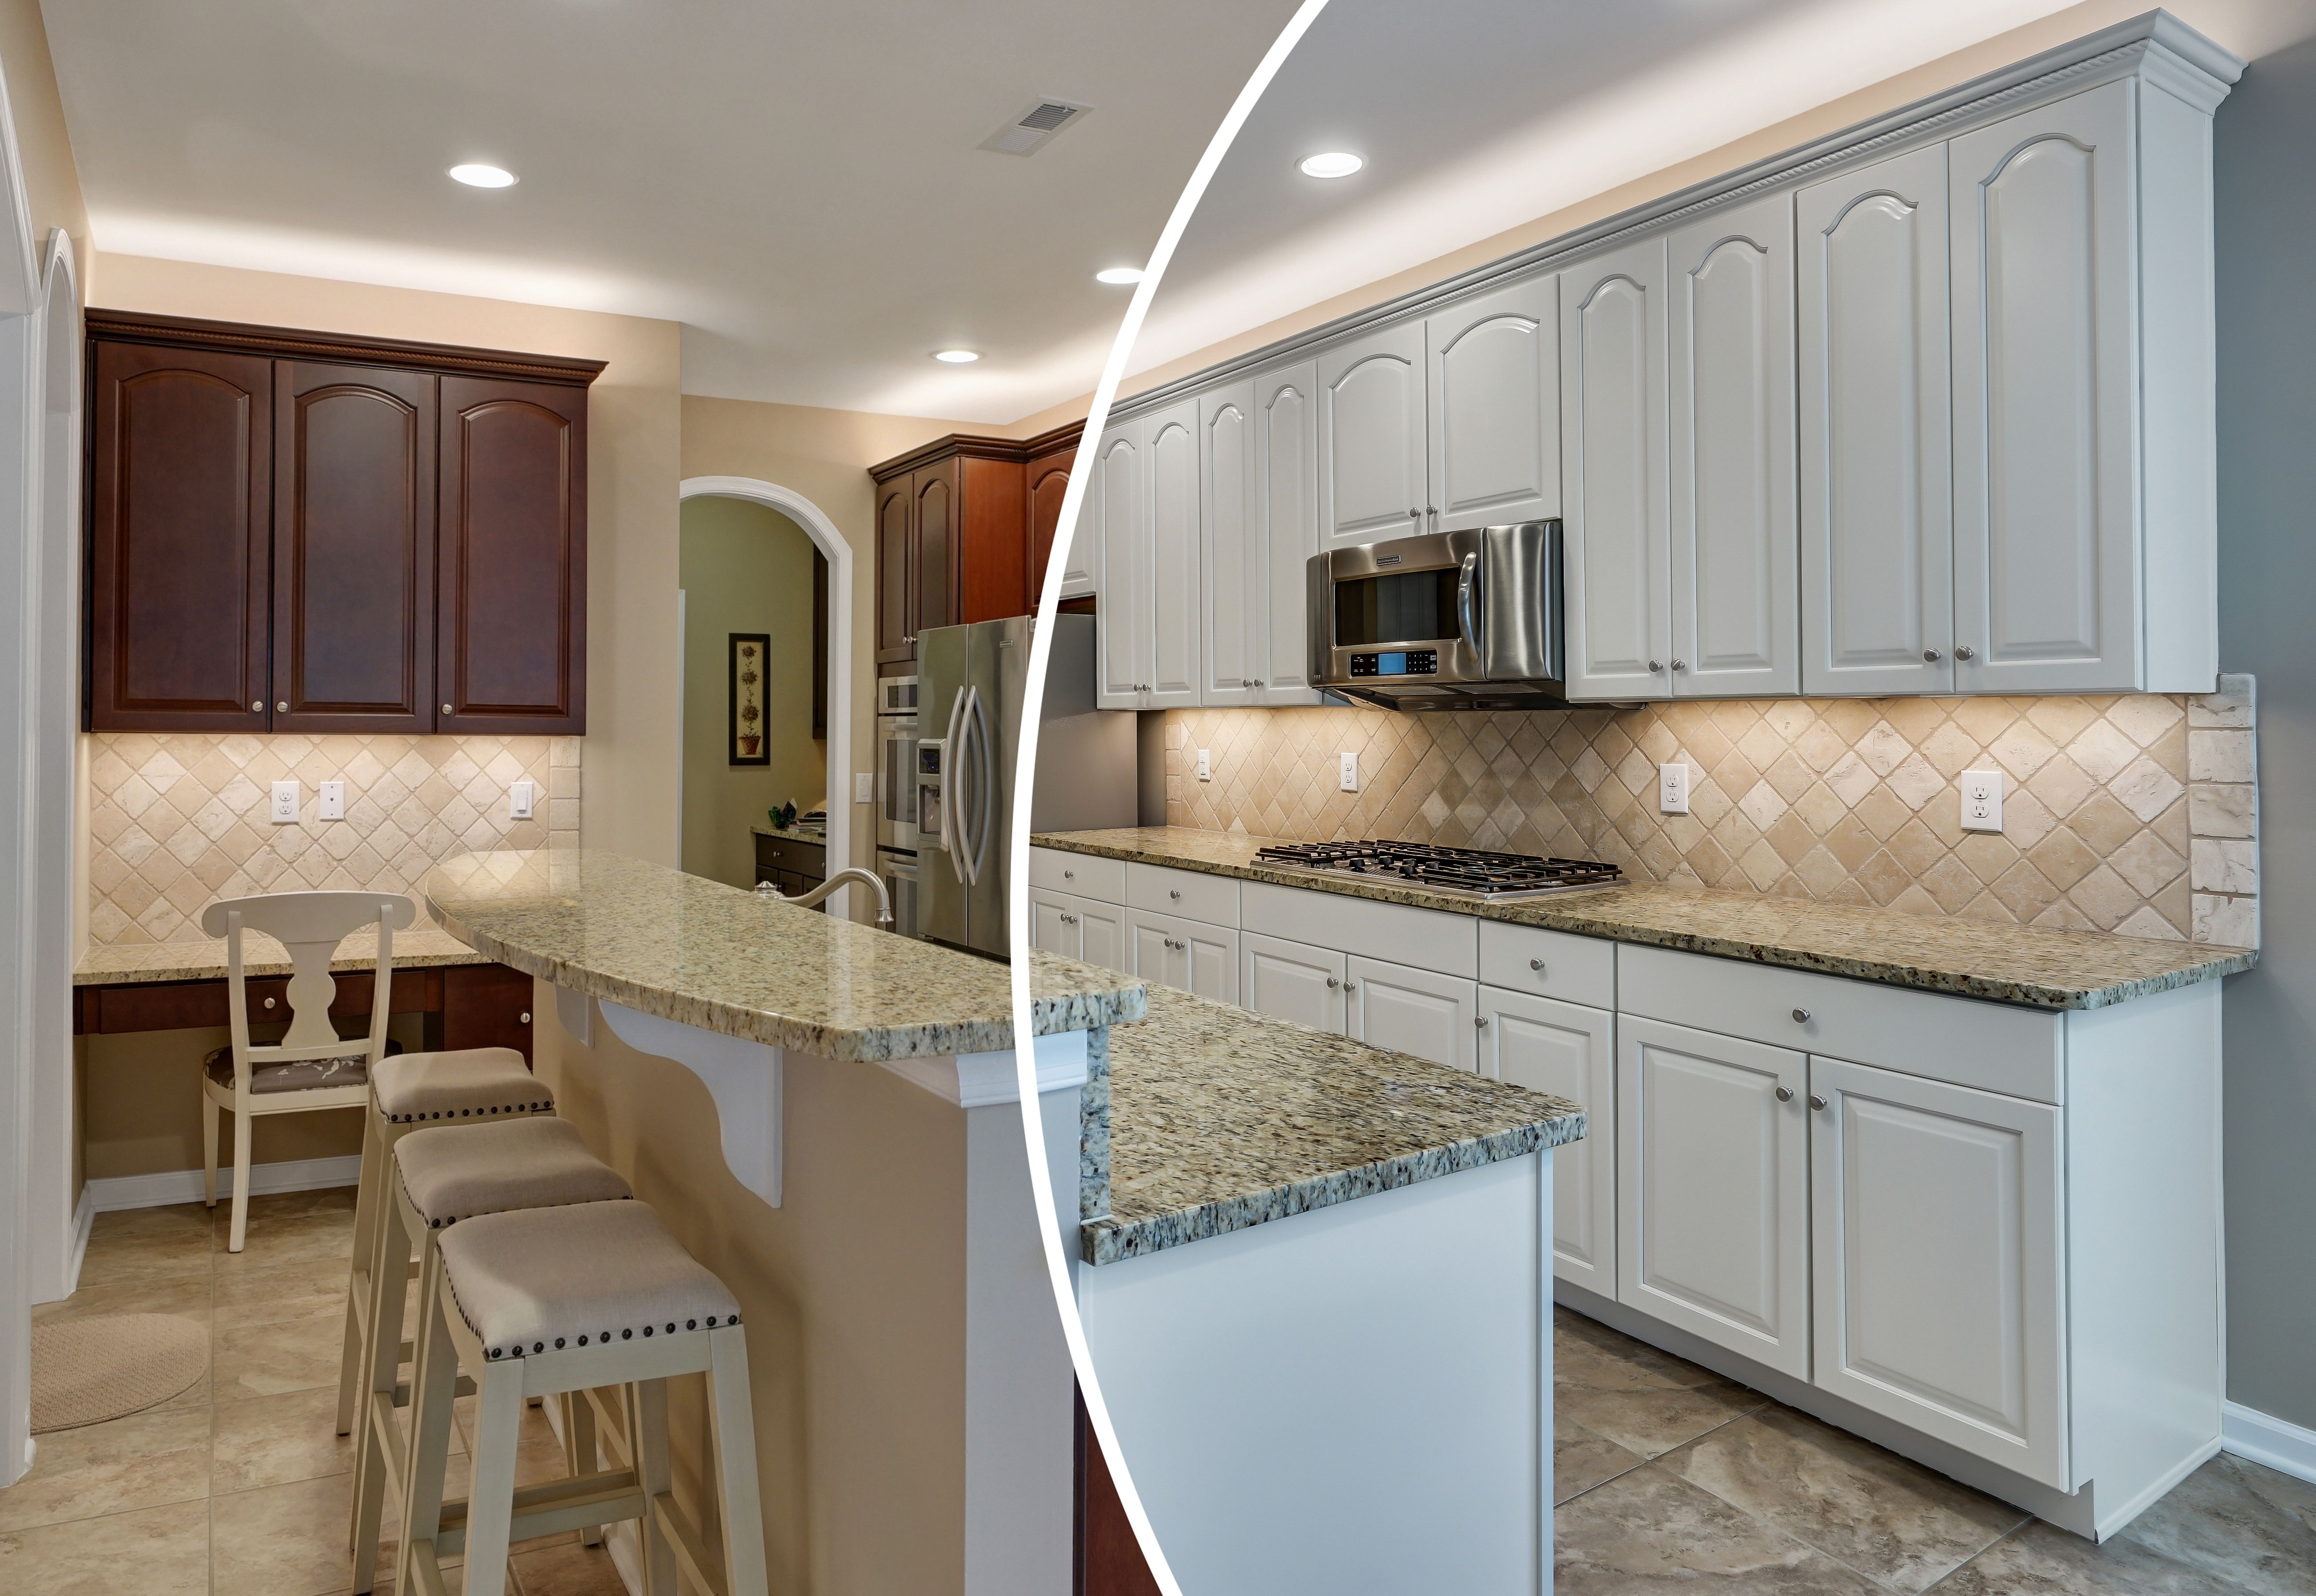 cabinet color change cabinet colors kitchen cabinet colors staining cabinets on kitchen interior cabinets id=38235